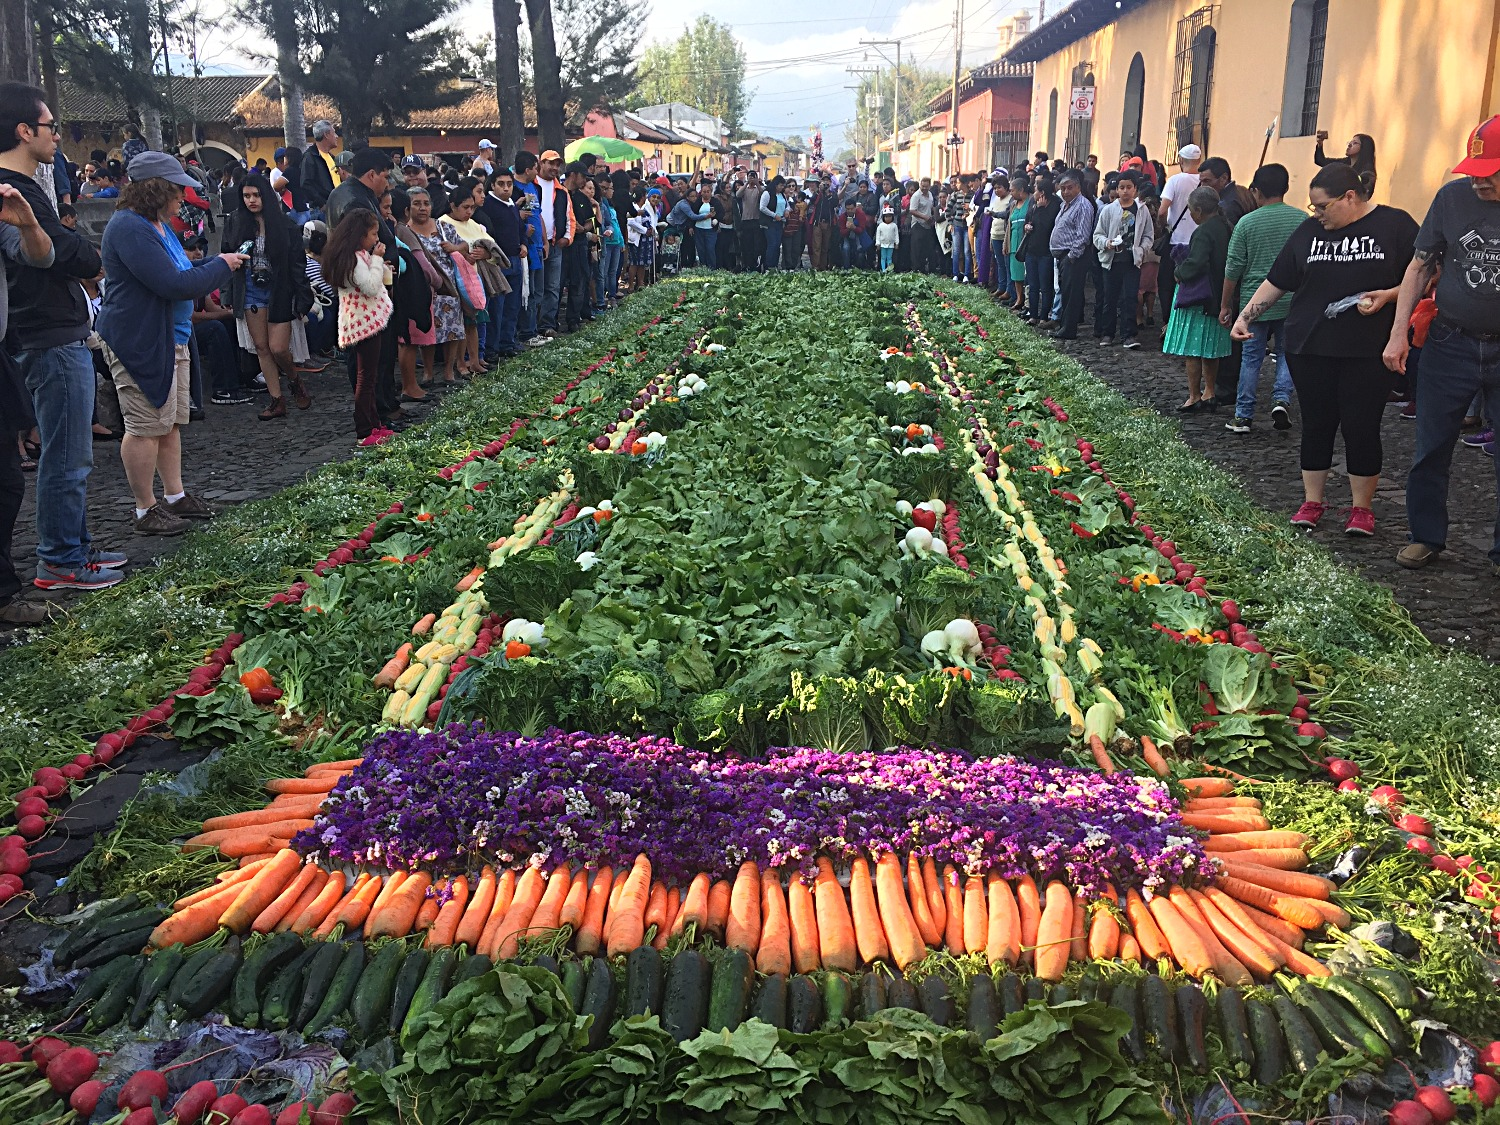 Vegetable alfombra